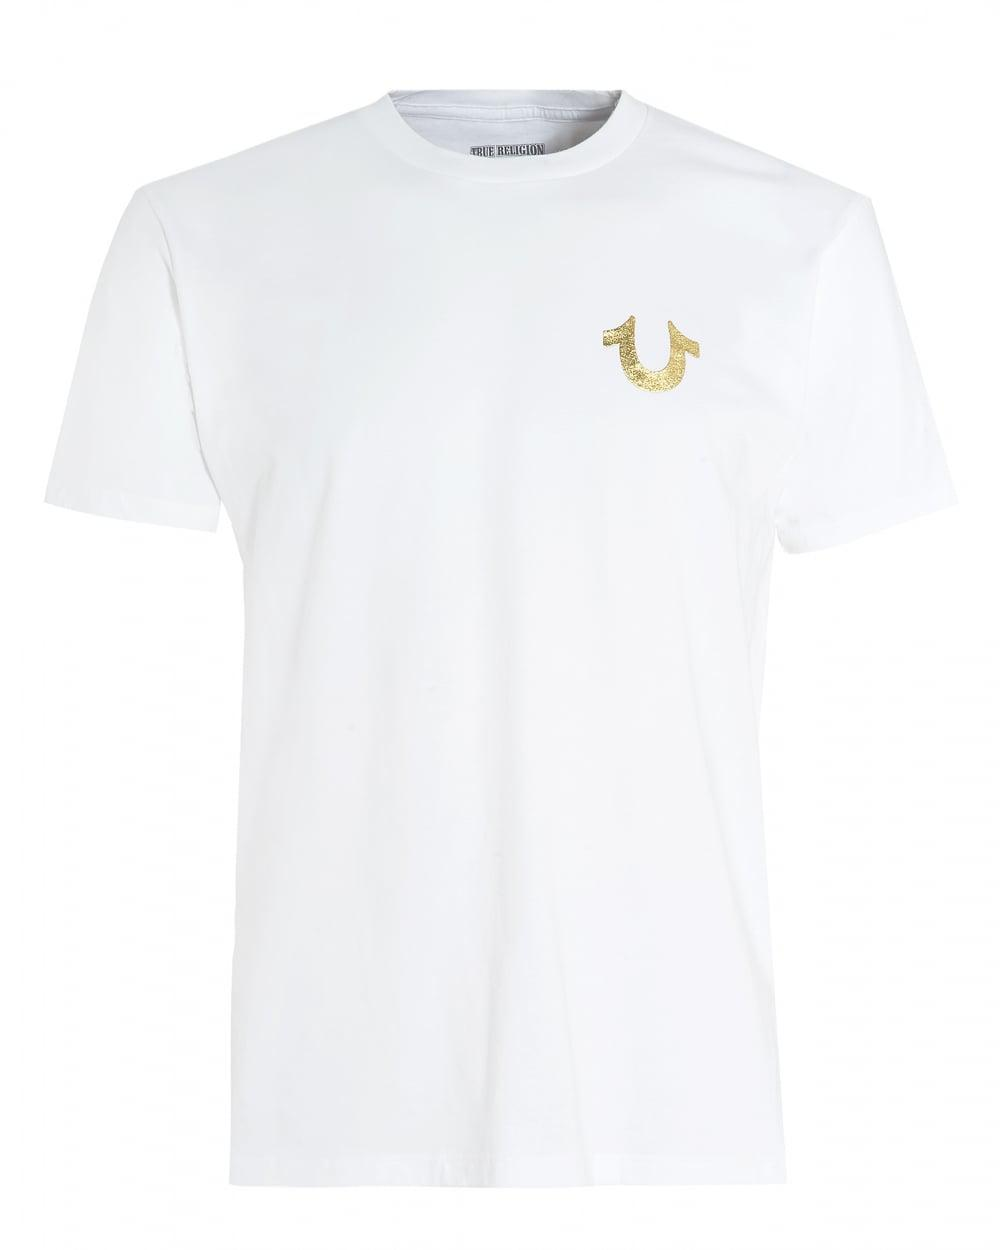 Lyst - True Religion White T-shirt, Gold Foil Buddha ...